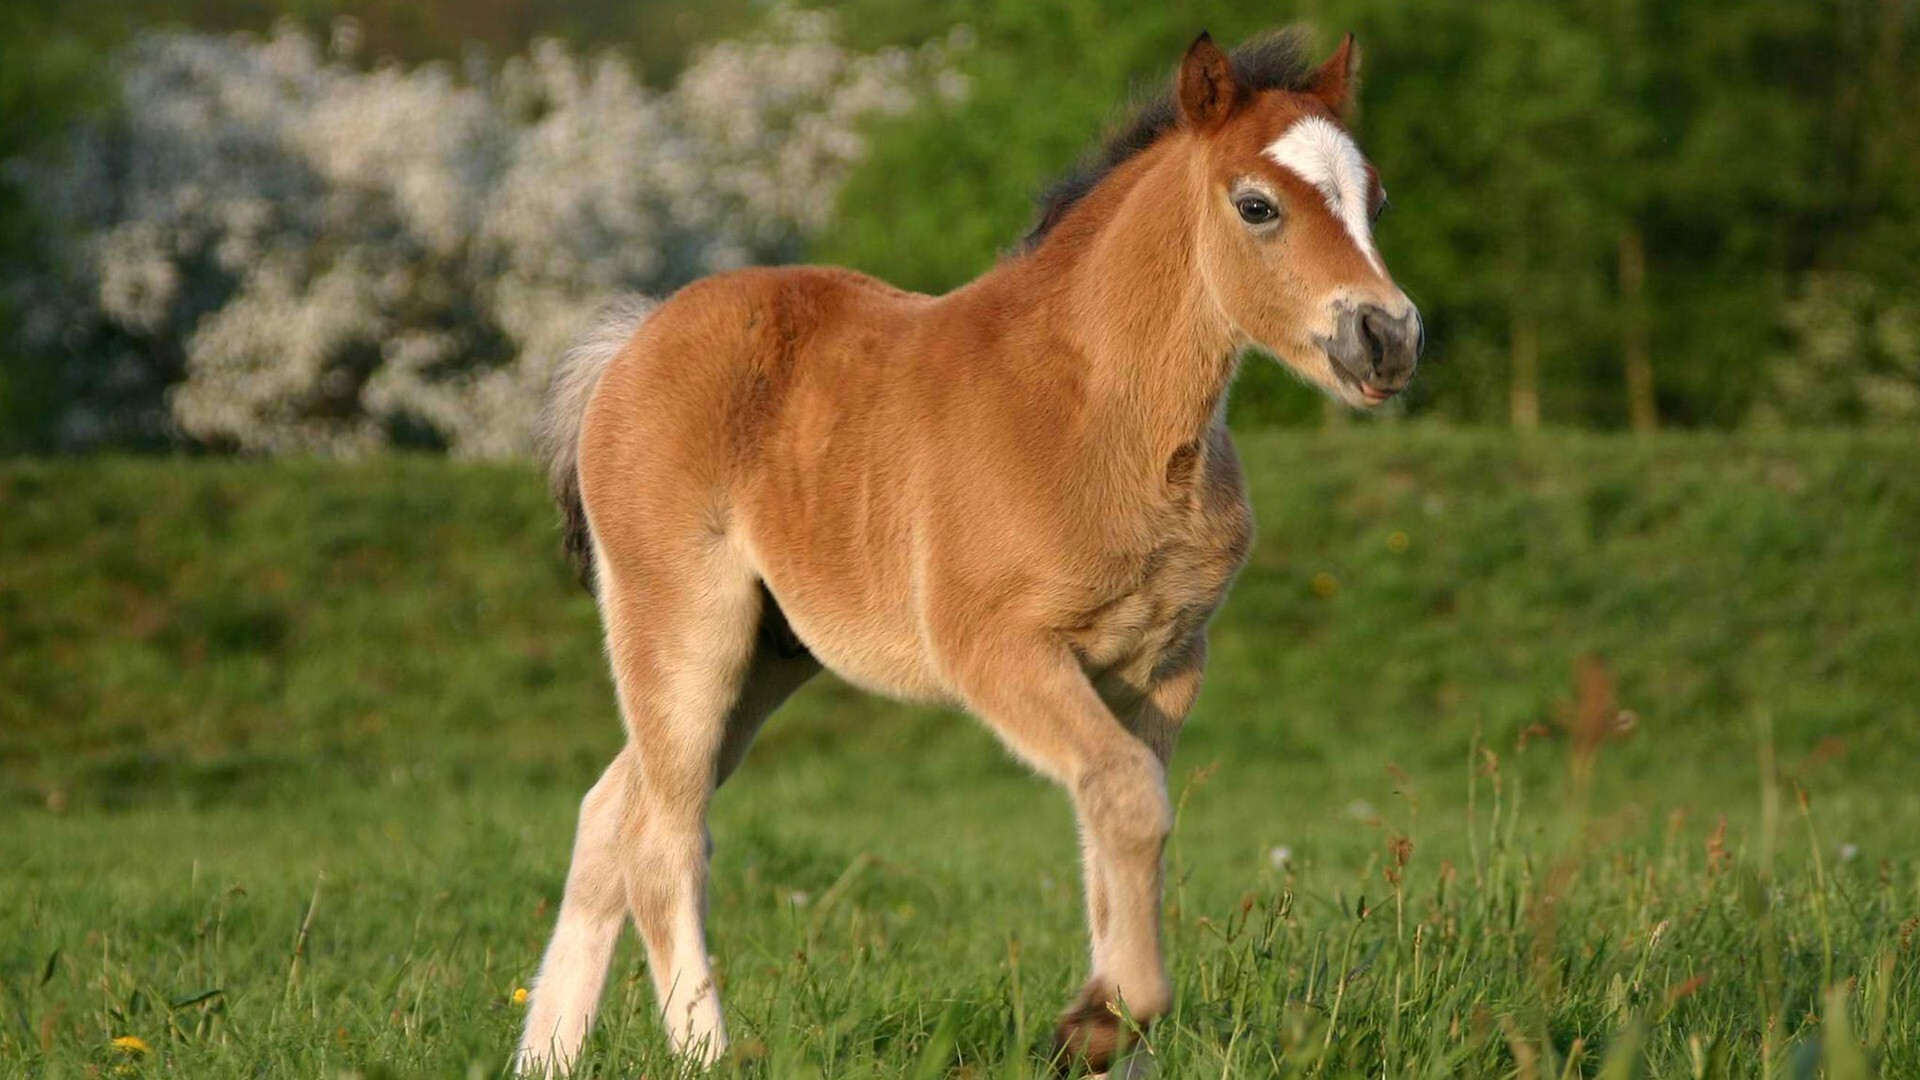 Beautiful Horse Baby Hd Wallpapers